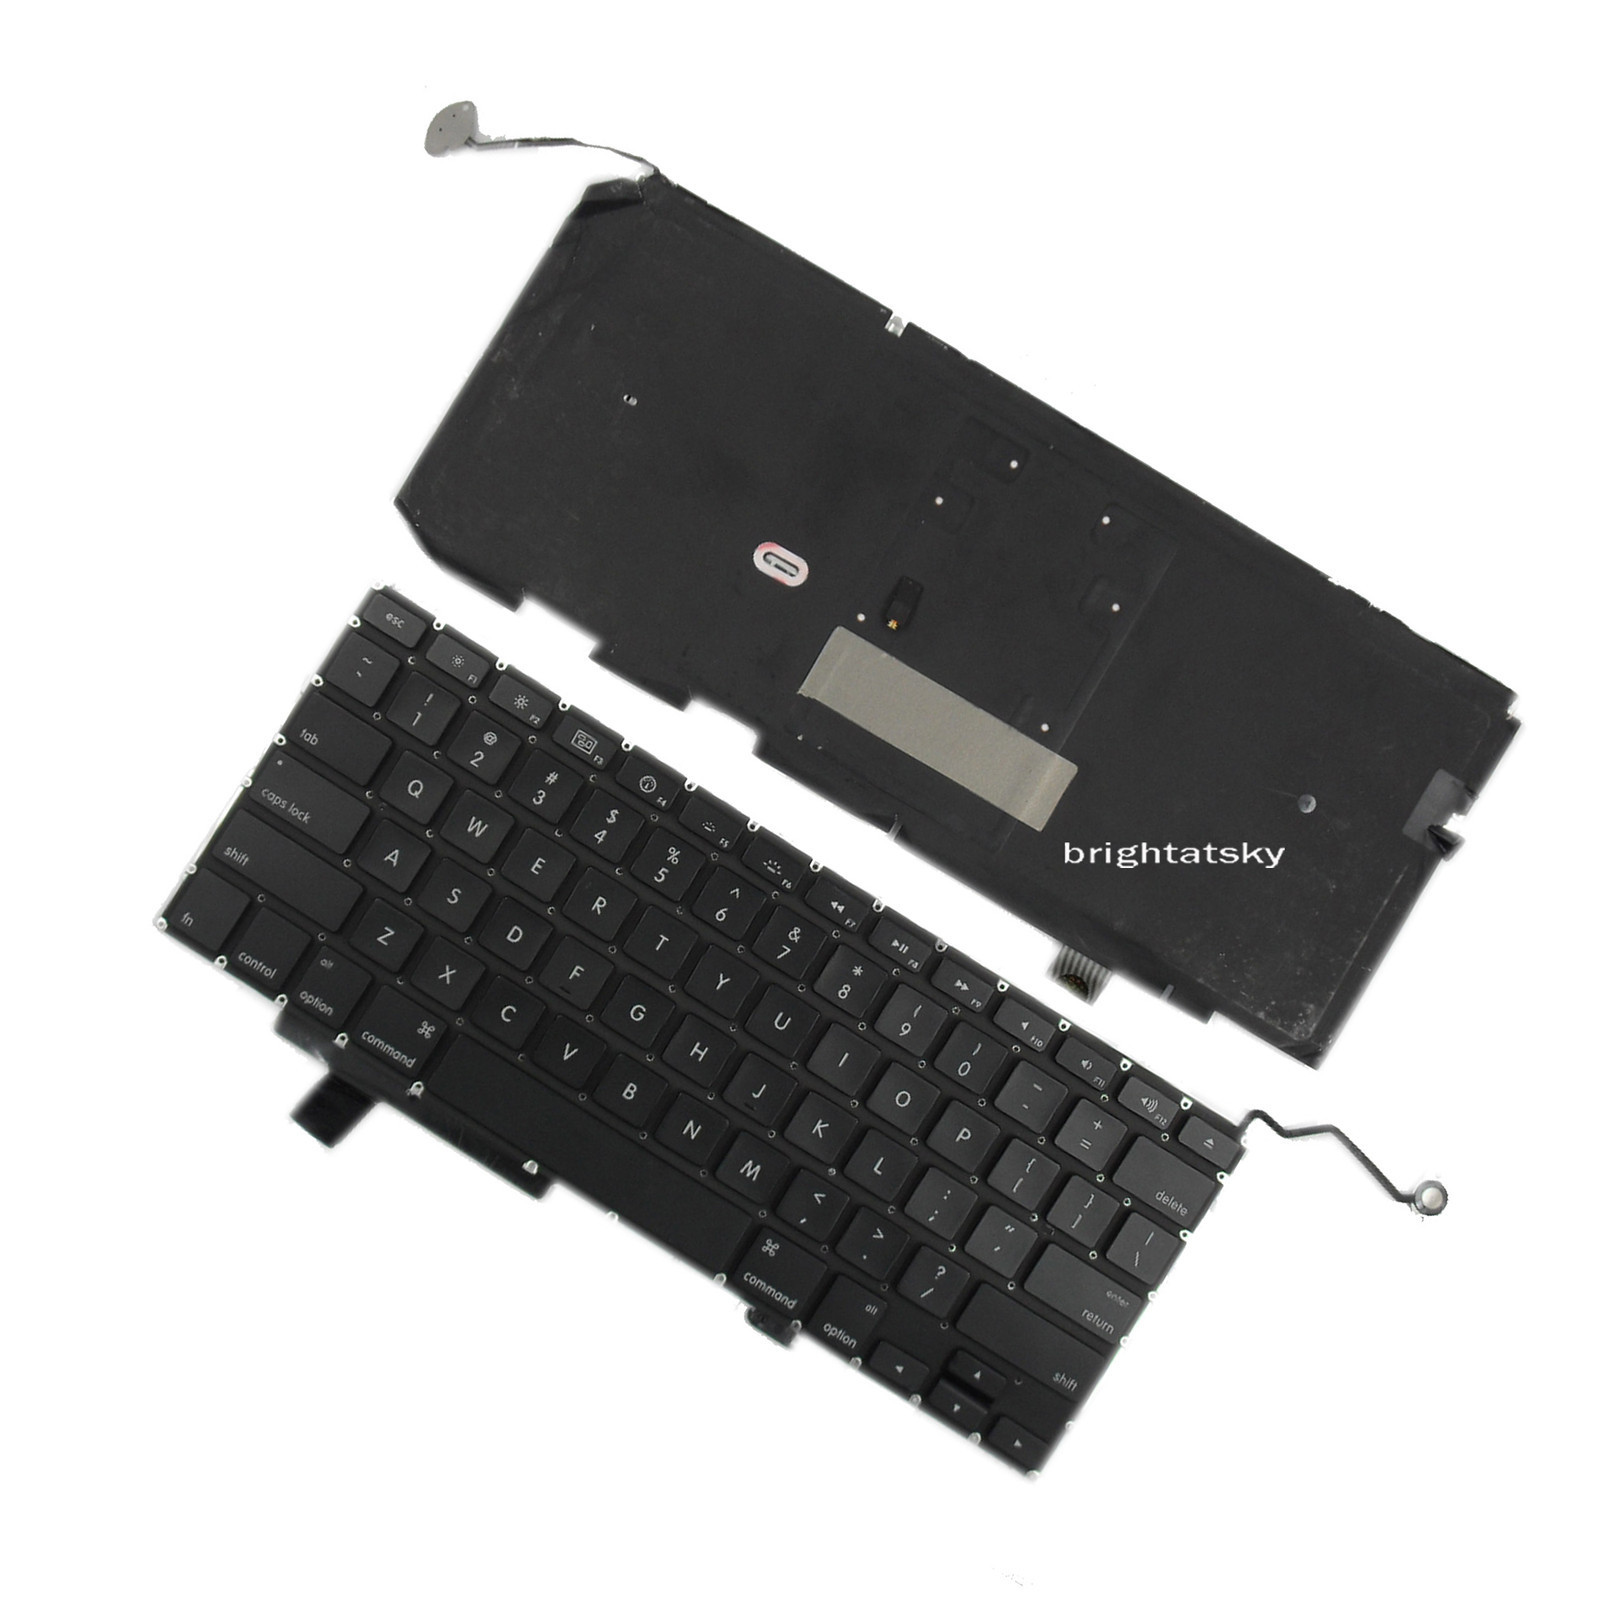 "Keyboard MacBook Pro 17"" Unibody A1297"